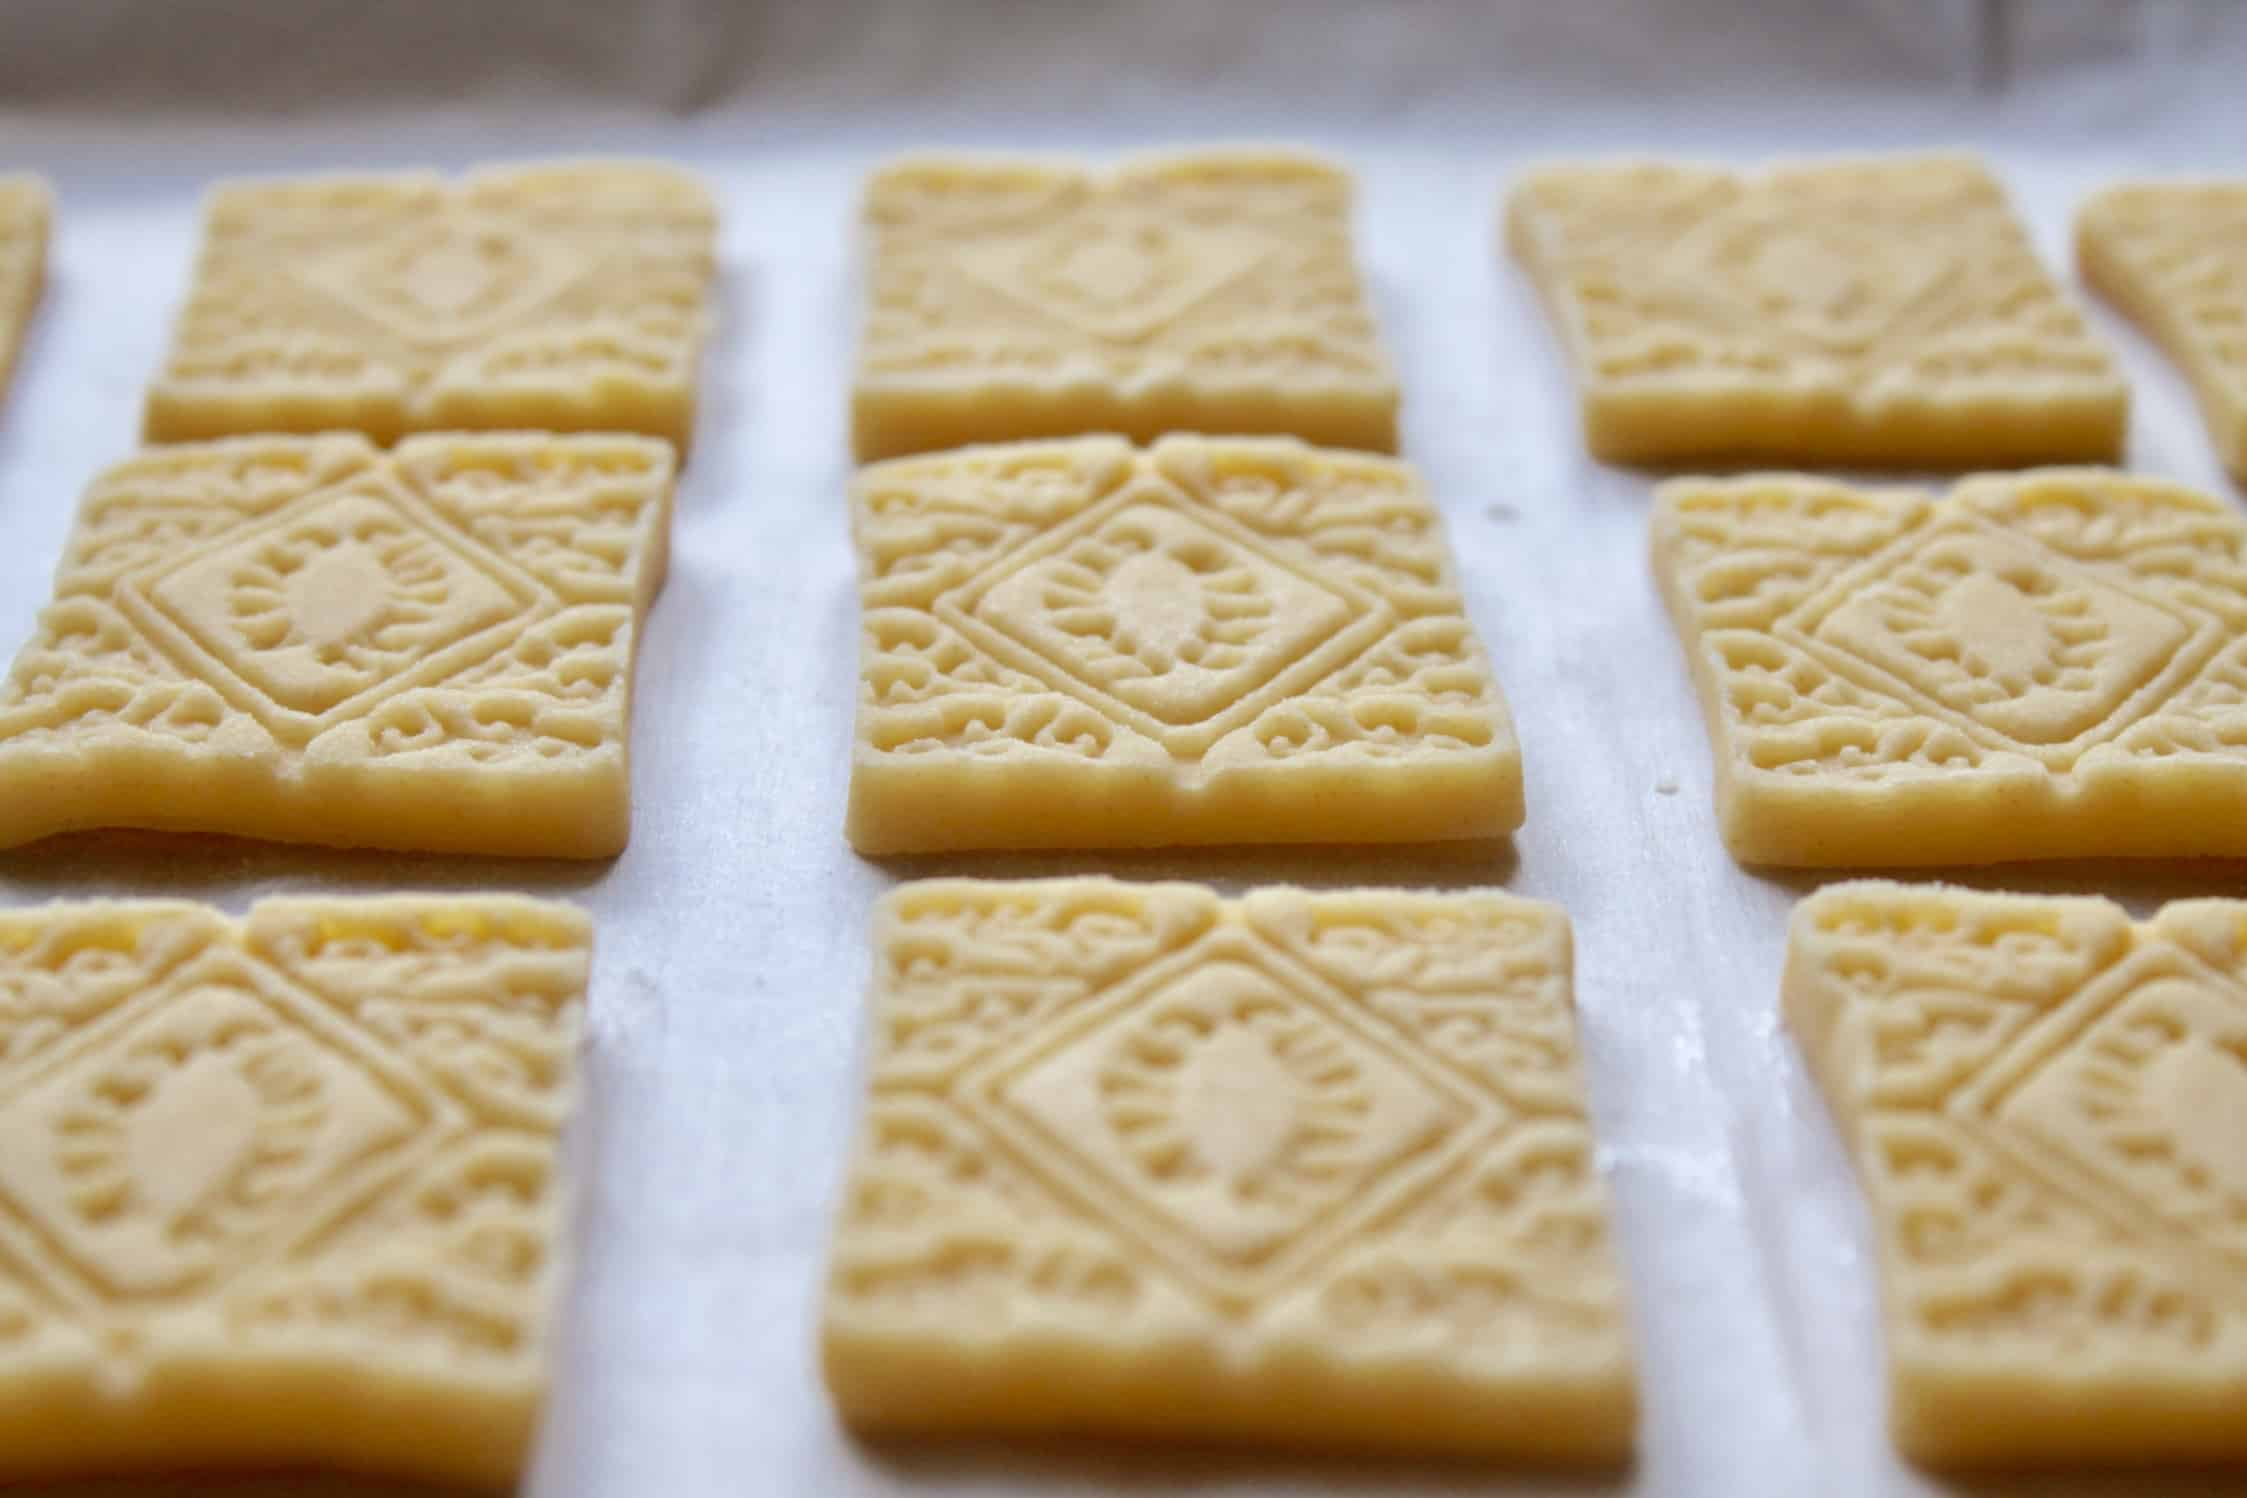 row of biscuits ready to bake